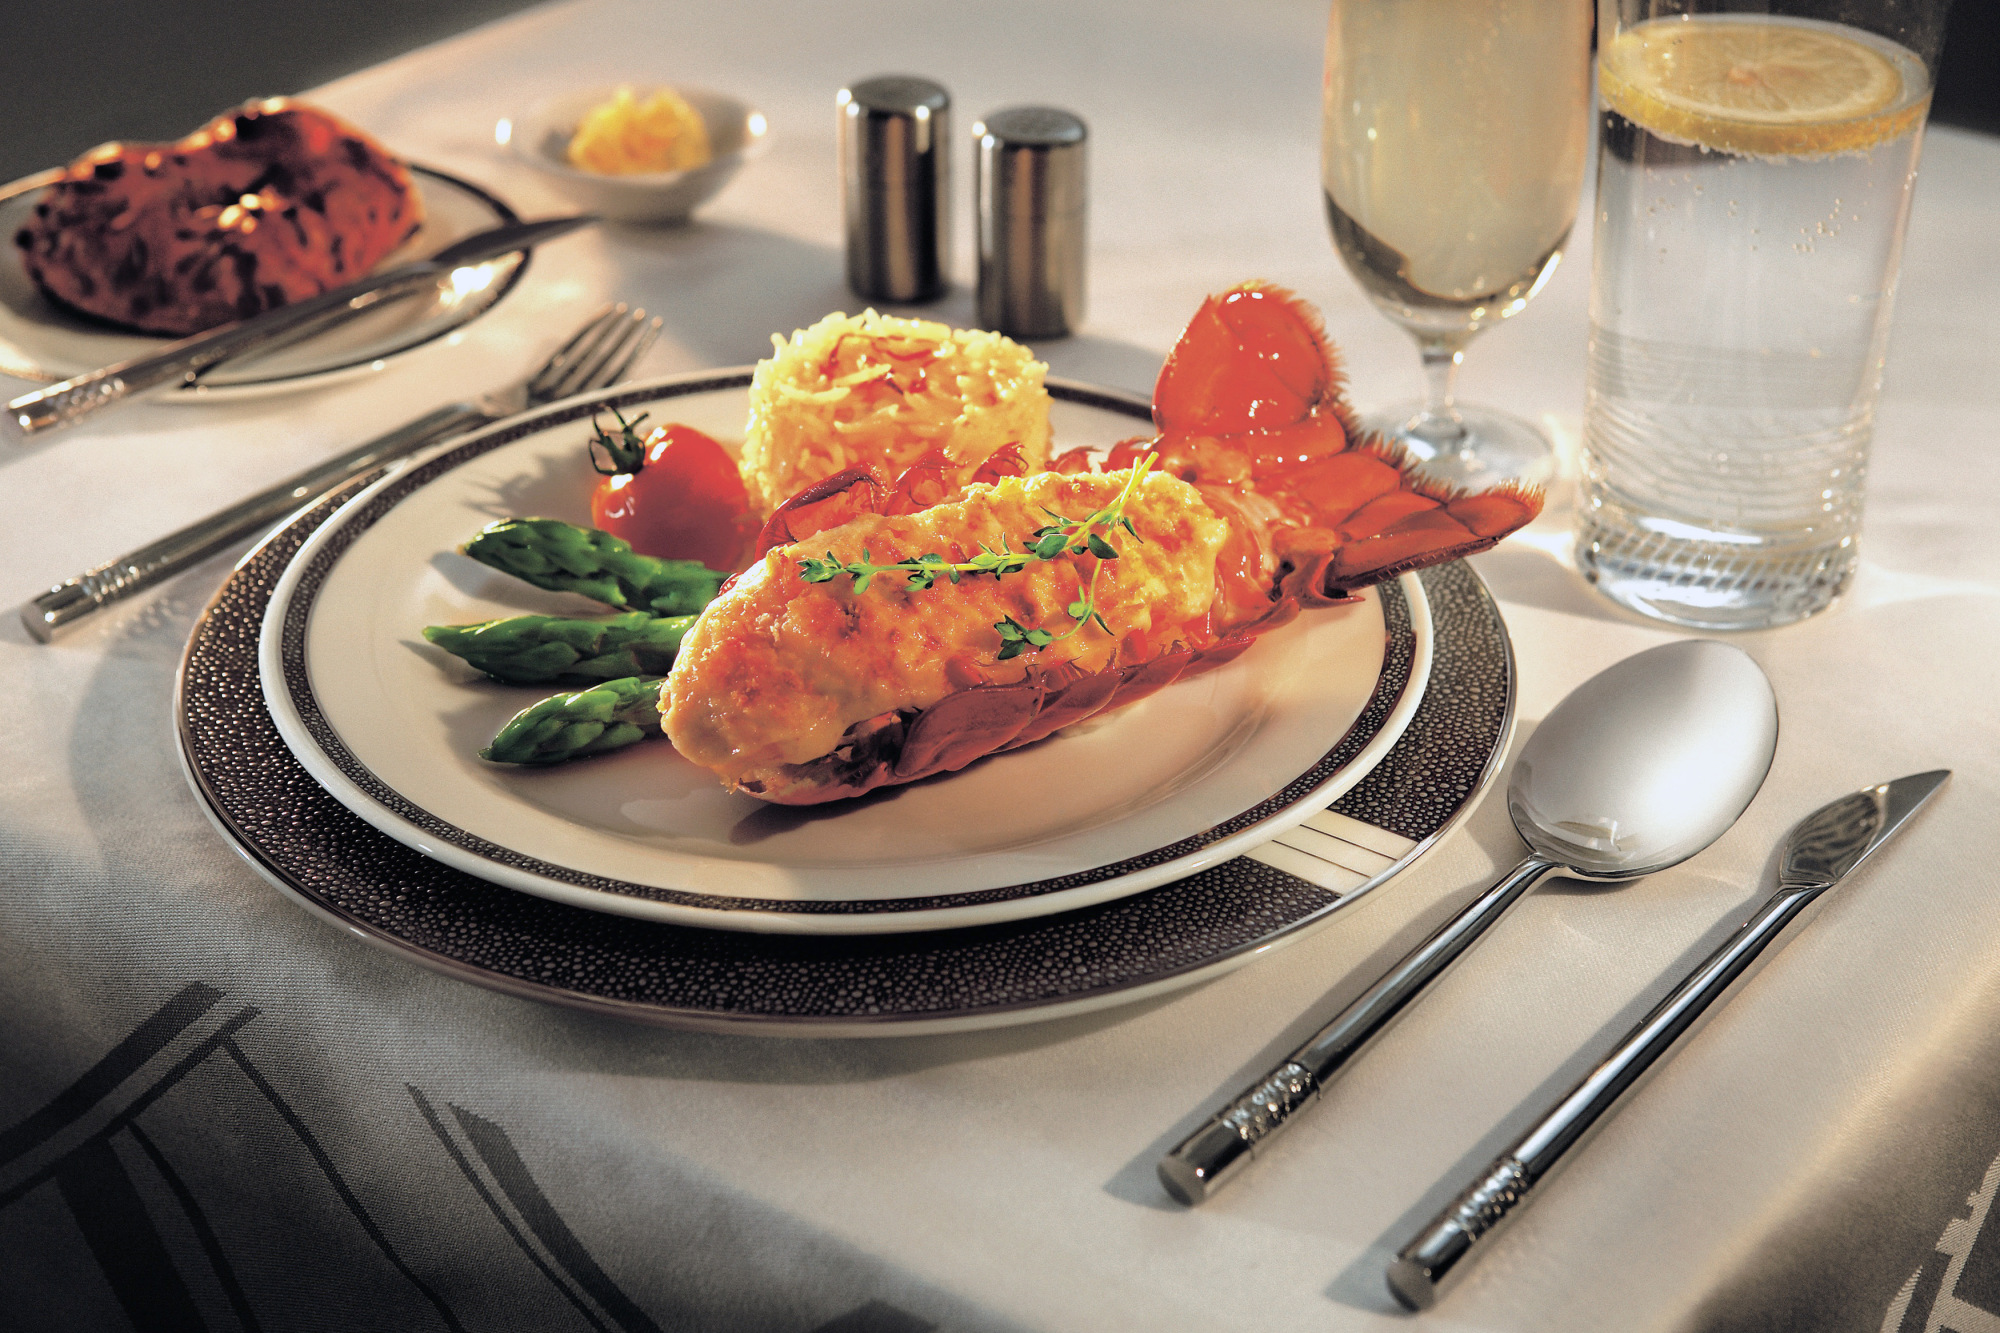 Lobster Thermidor can be ordered at world's longest flight. Image: Singapore Airlines